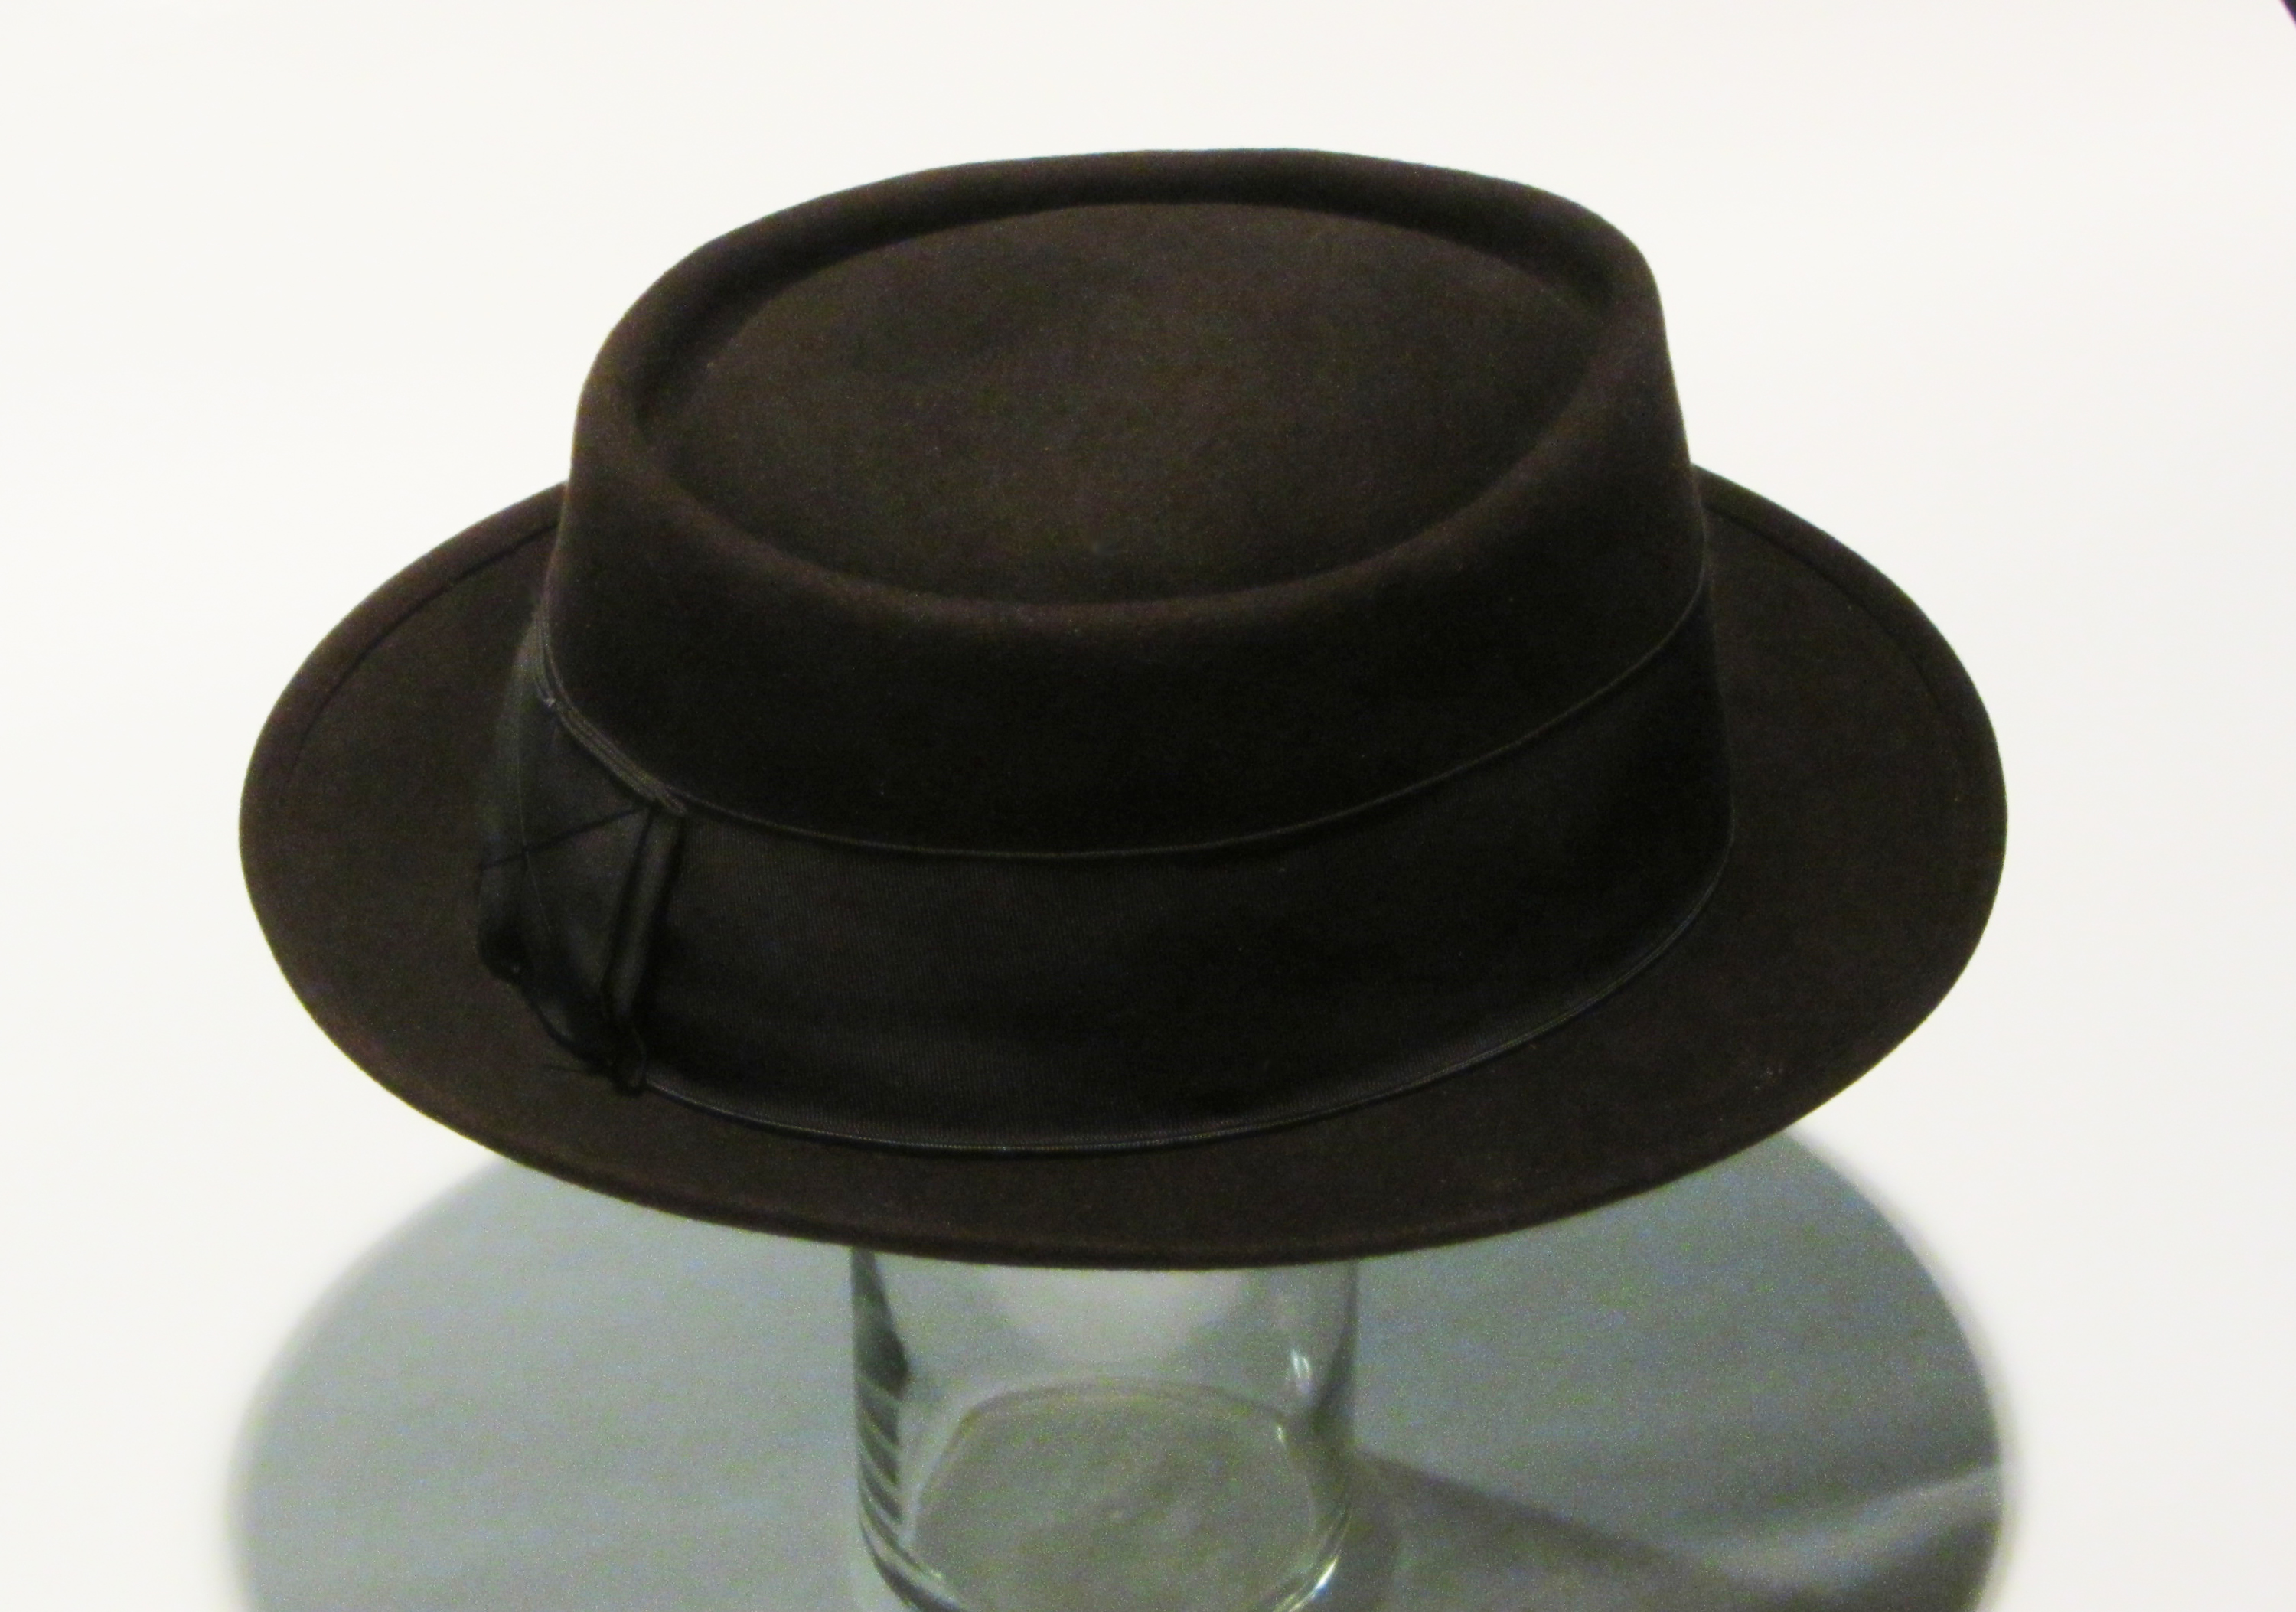 d4b7f67374d68 Pork pie hat - Wikipedia